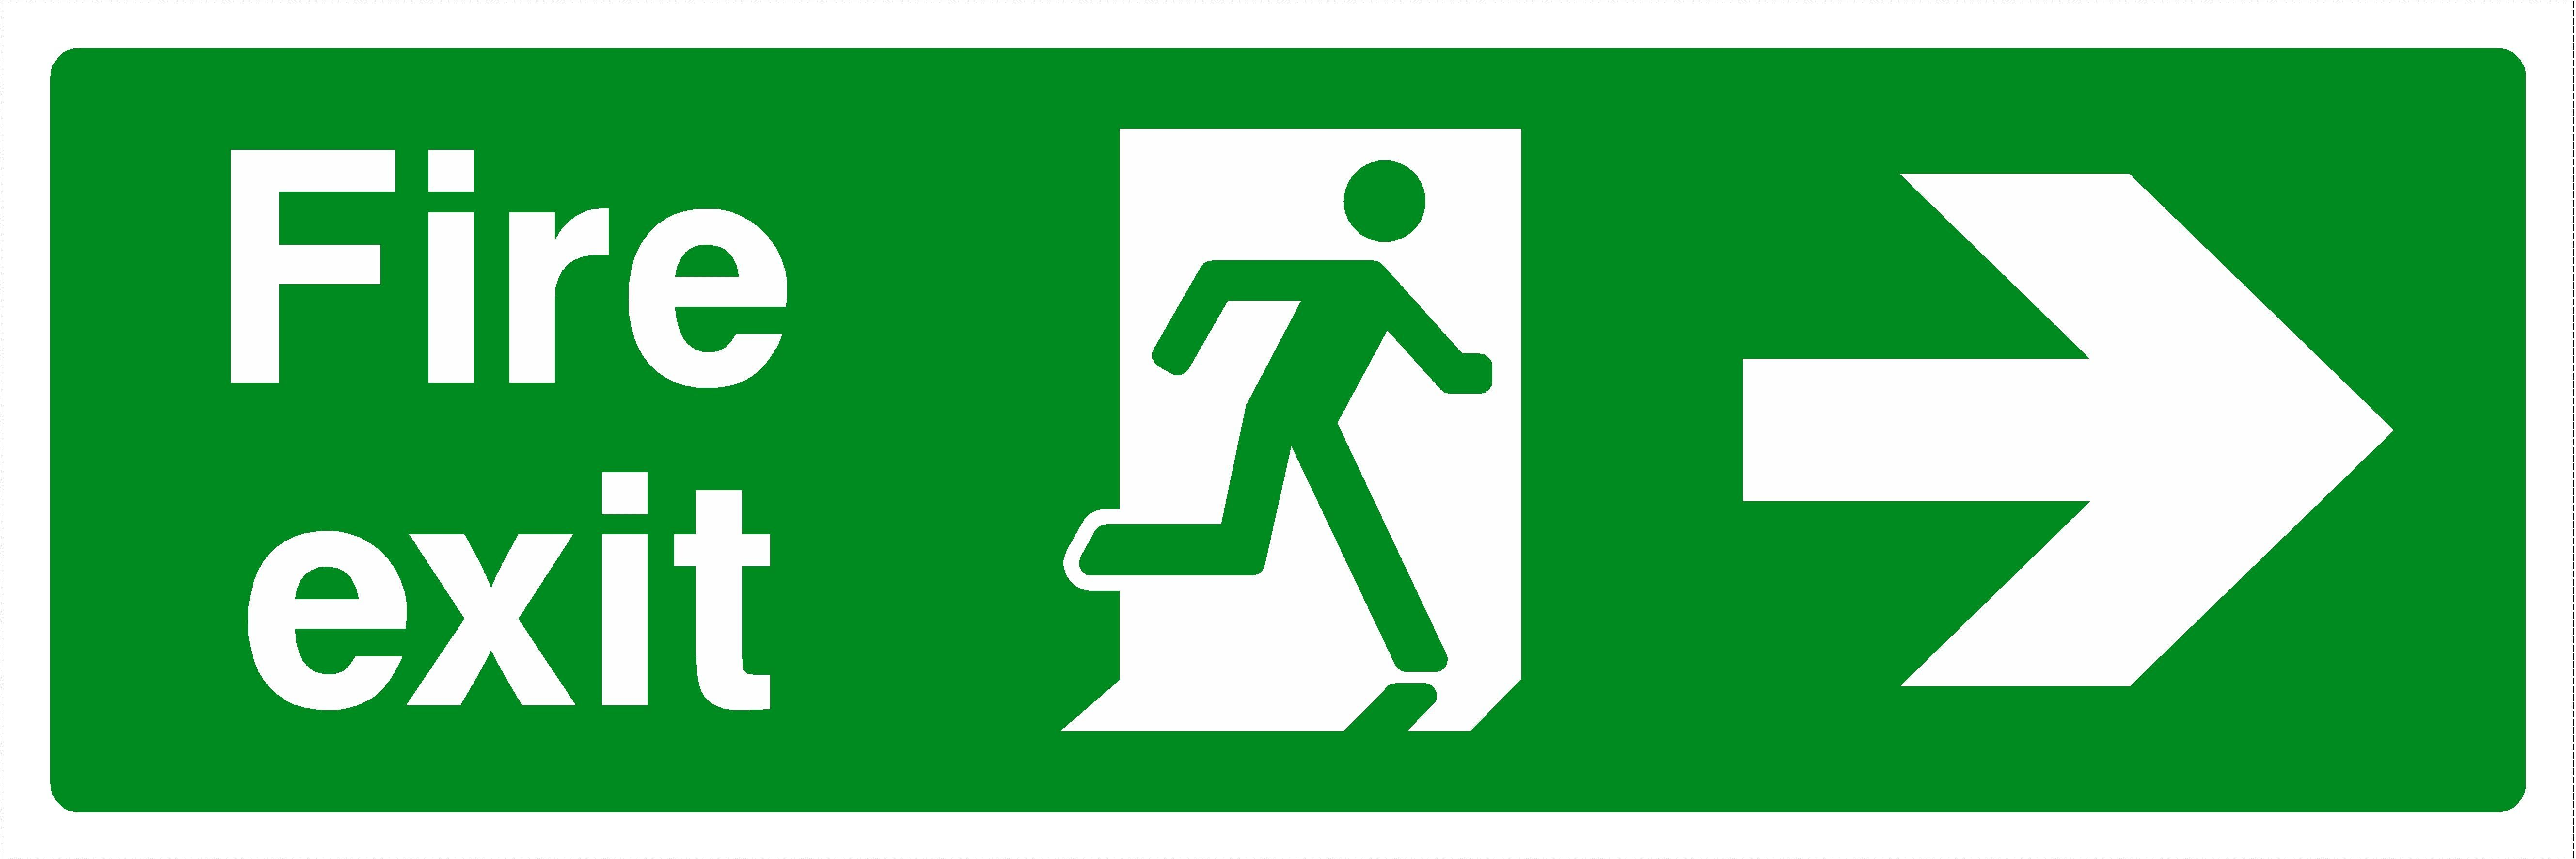 Image result for fire exit hd Exit sign, Signs, Signboard